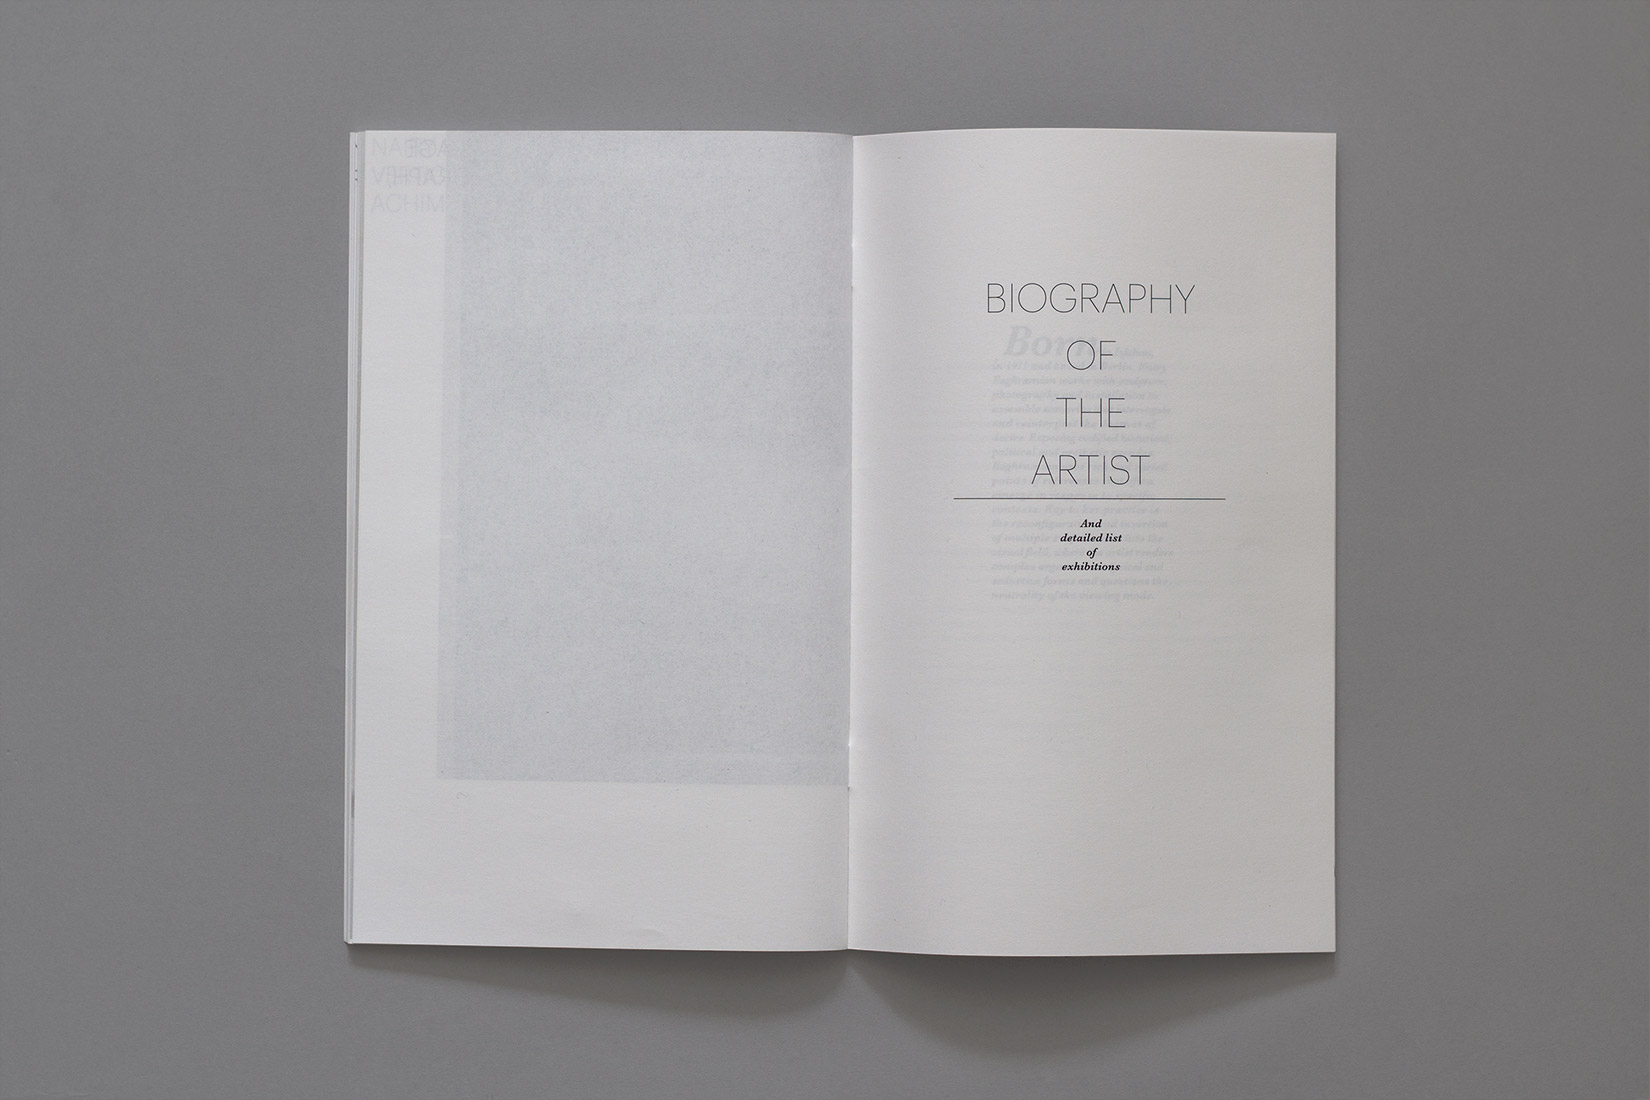 Livre d'artiste, Nairy Baghramian, Biography of the artist